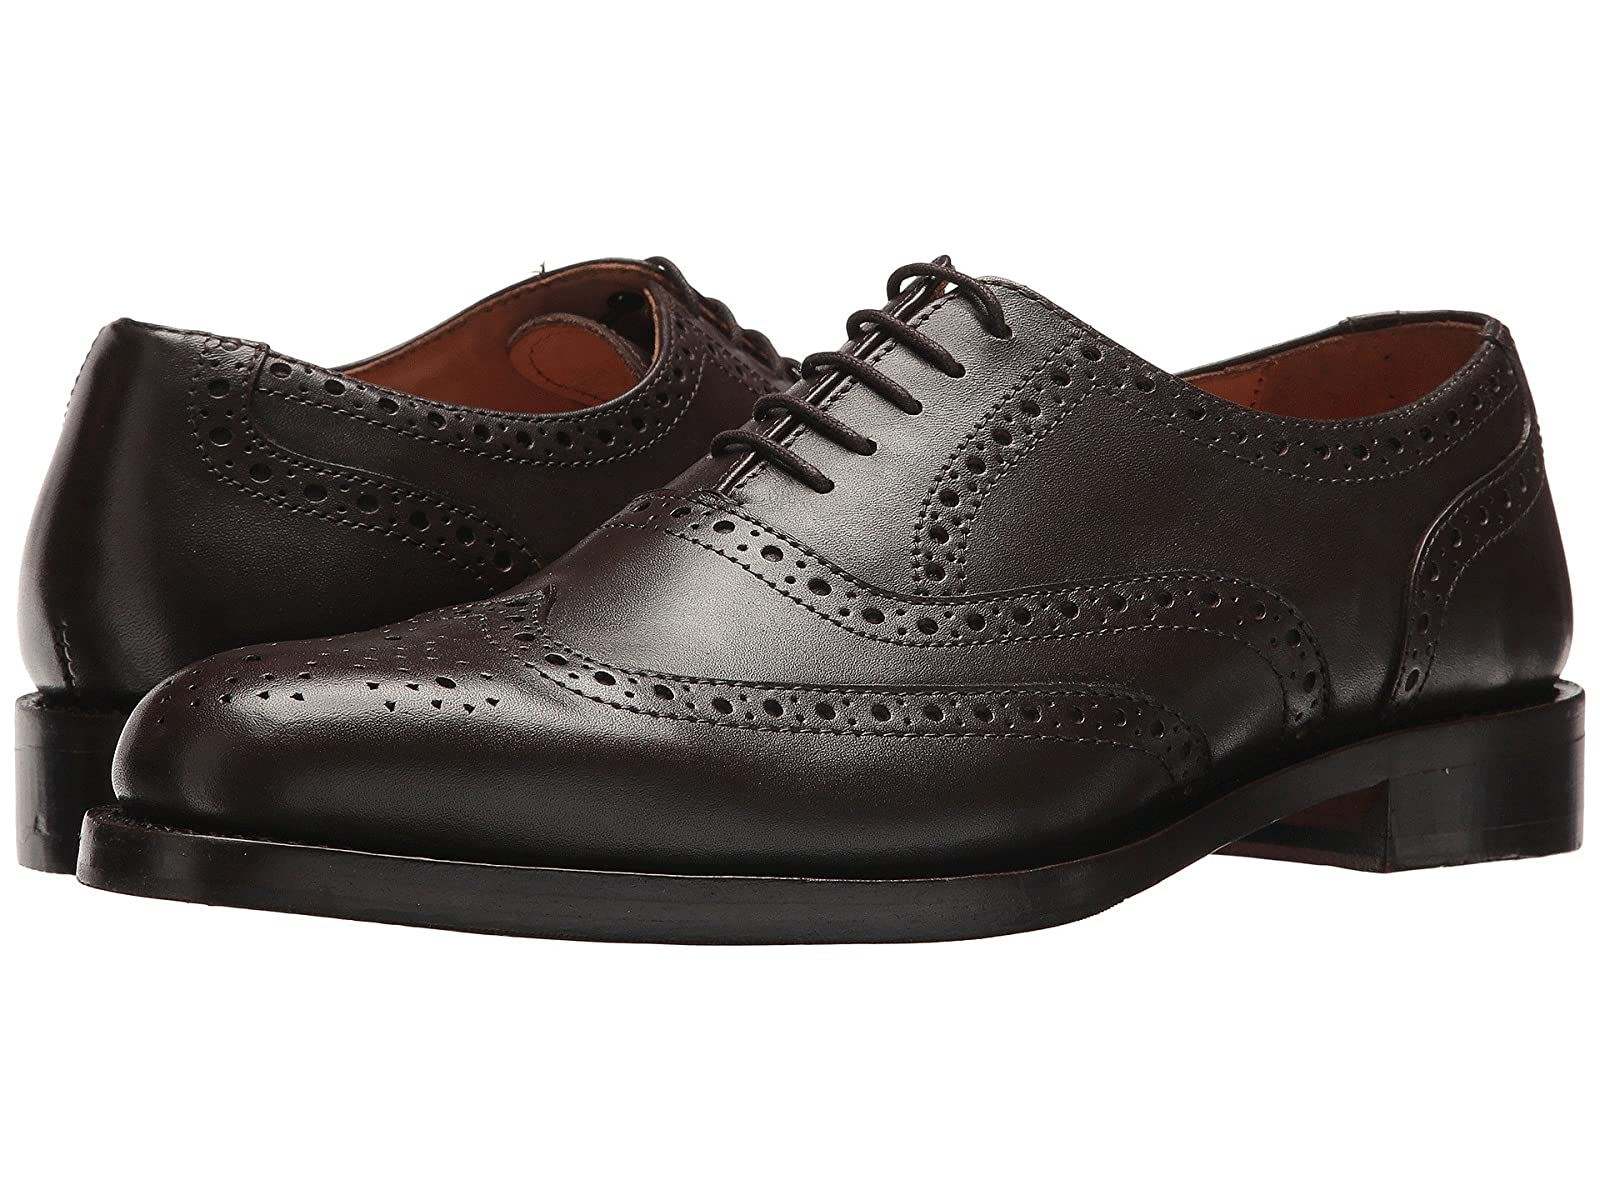 CARLOS by Carlos Santana MissionAtmospheric grades have affordable shoes